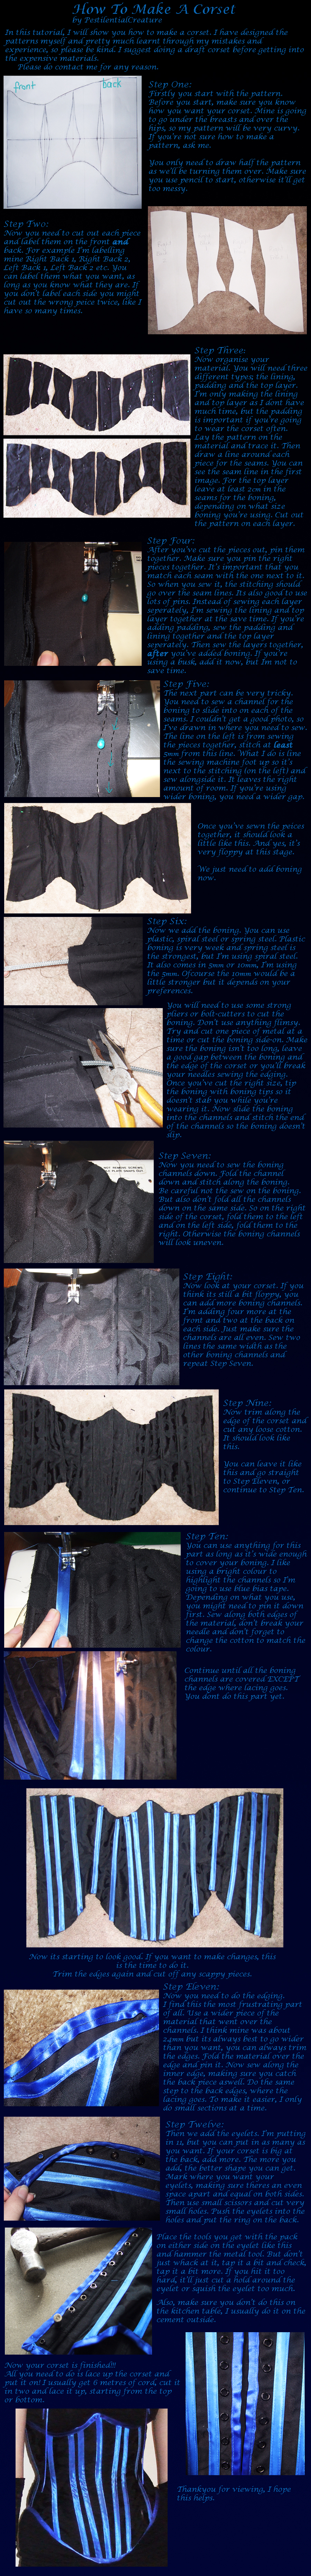 Corset Tutorial. by TracieMacVean